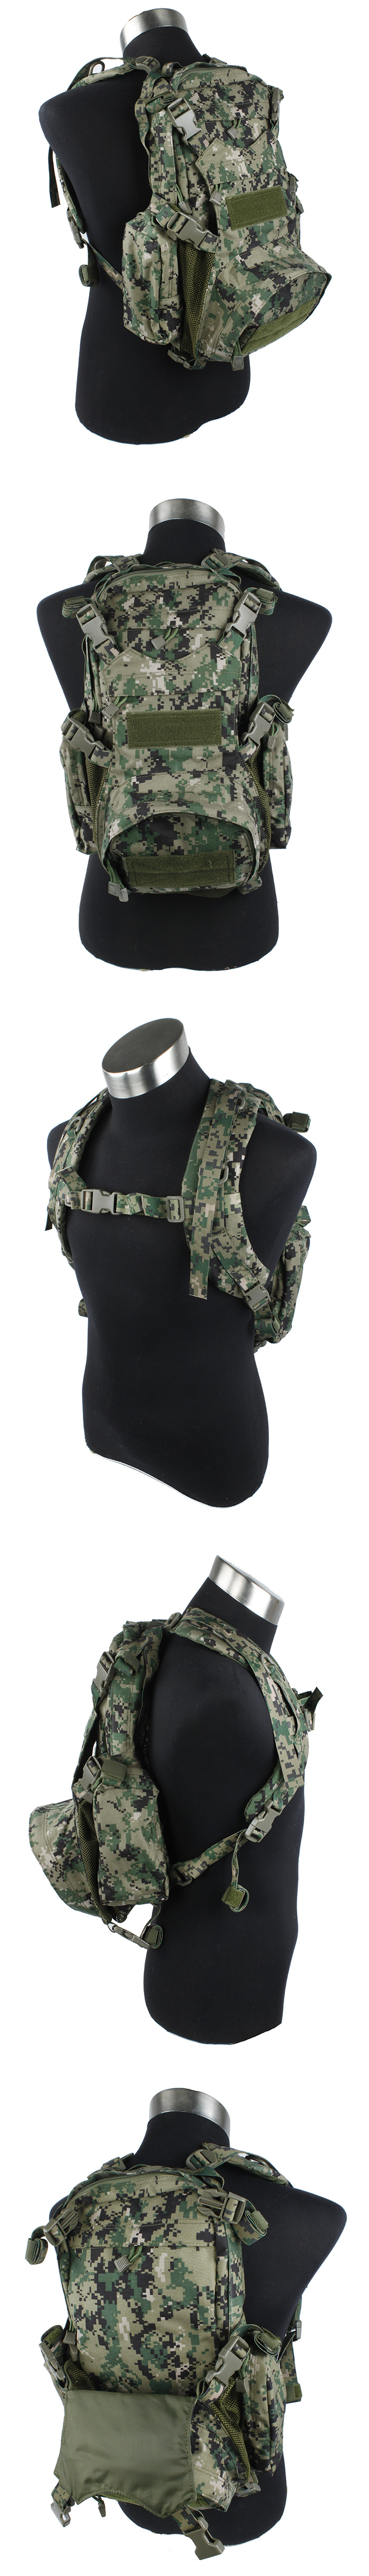 EbairSoft Airsoft parts & Tactical Gear - G TMC MOLLE ...